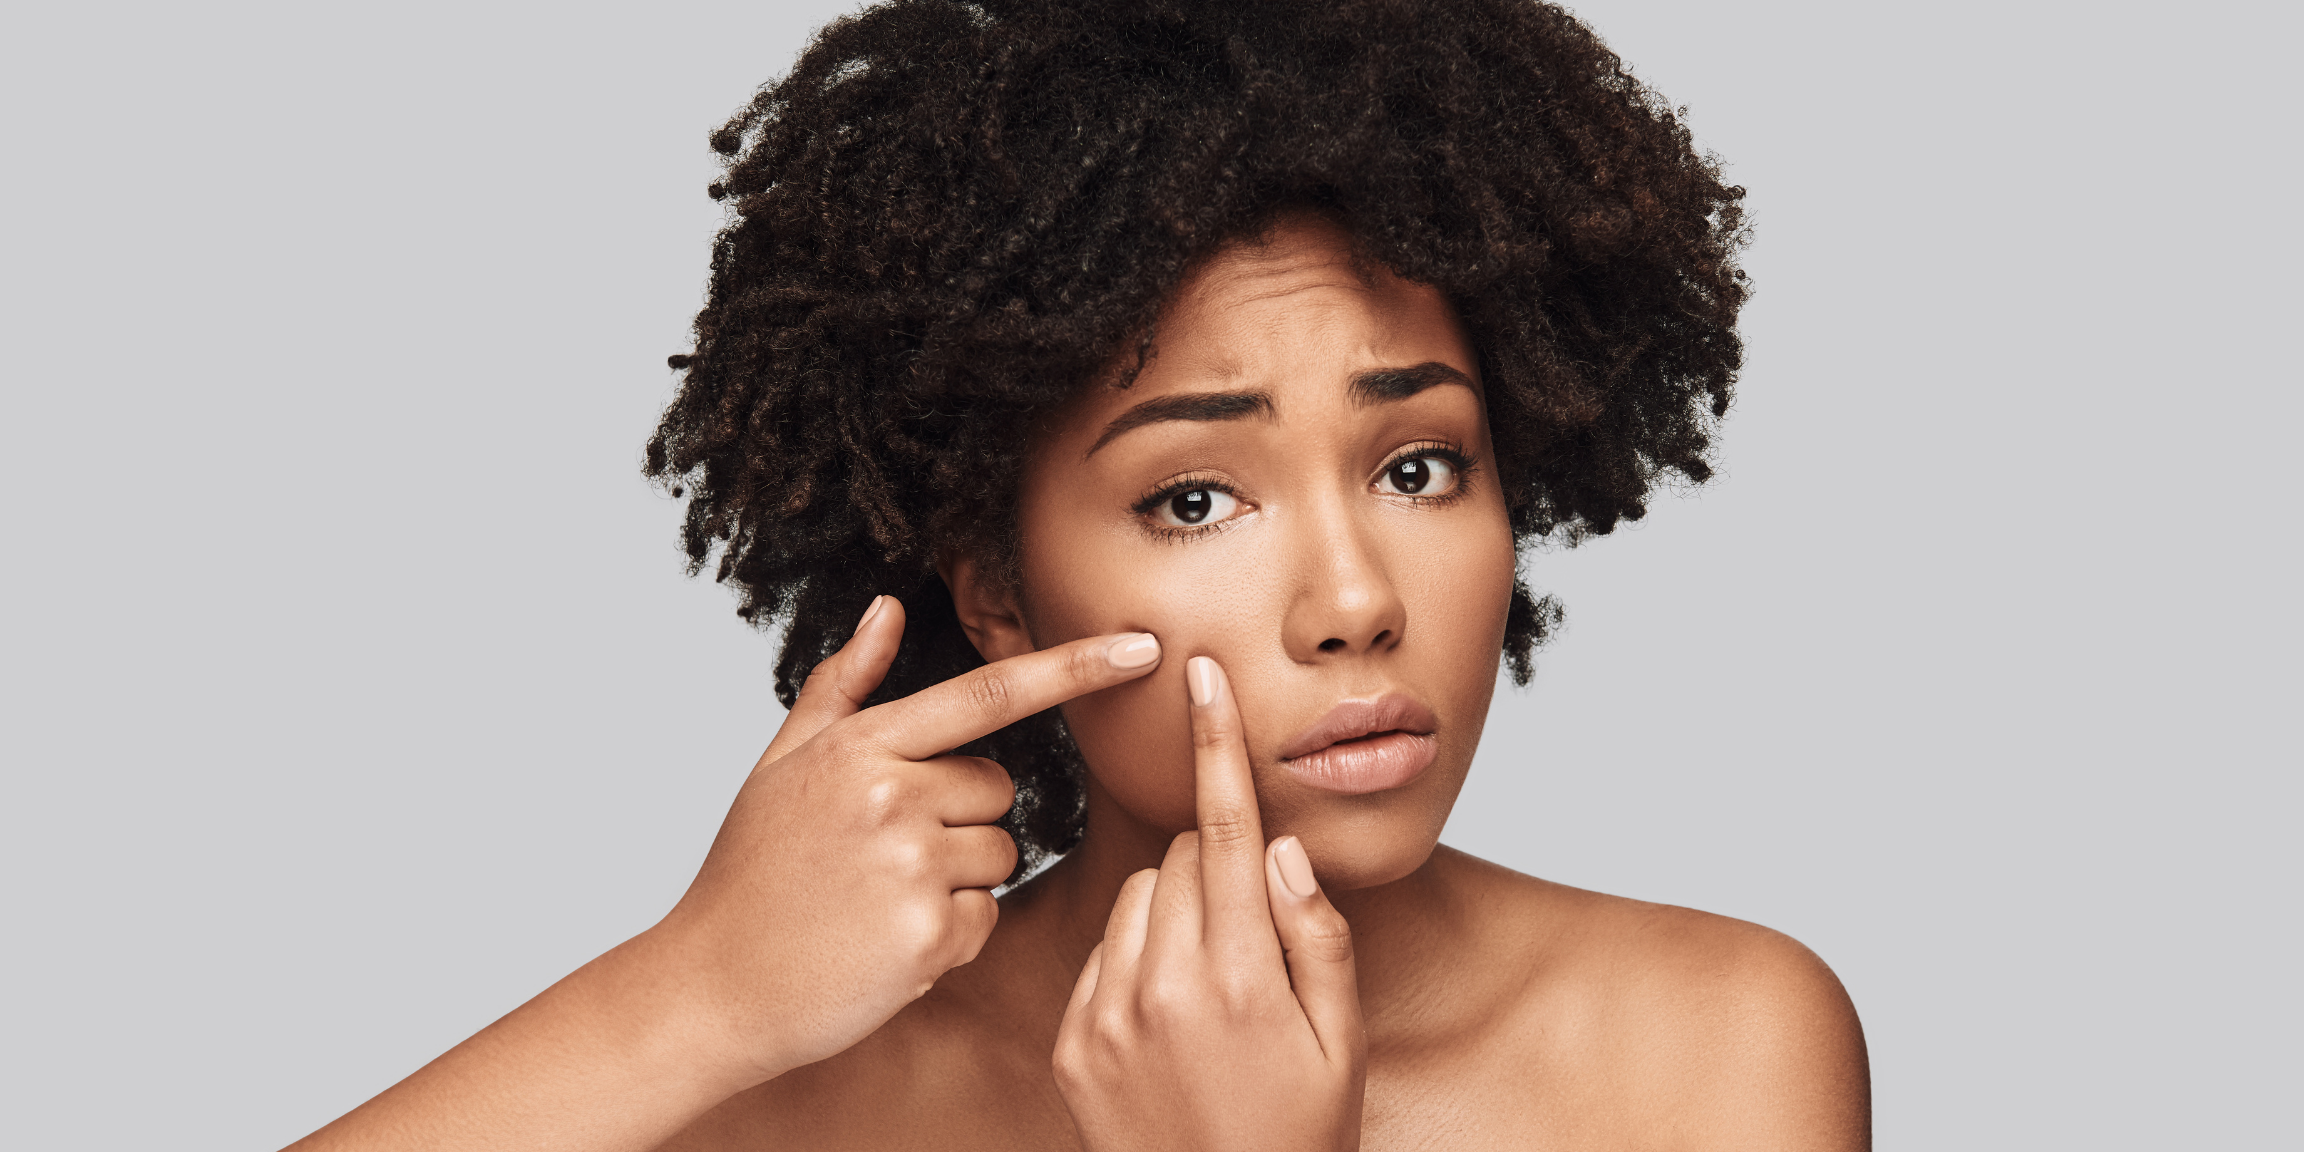 woman looking concerned and touching her skin, about to squeeze a pimple